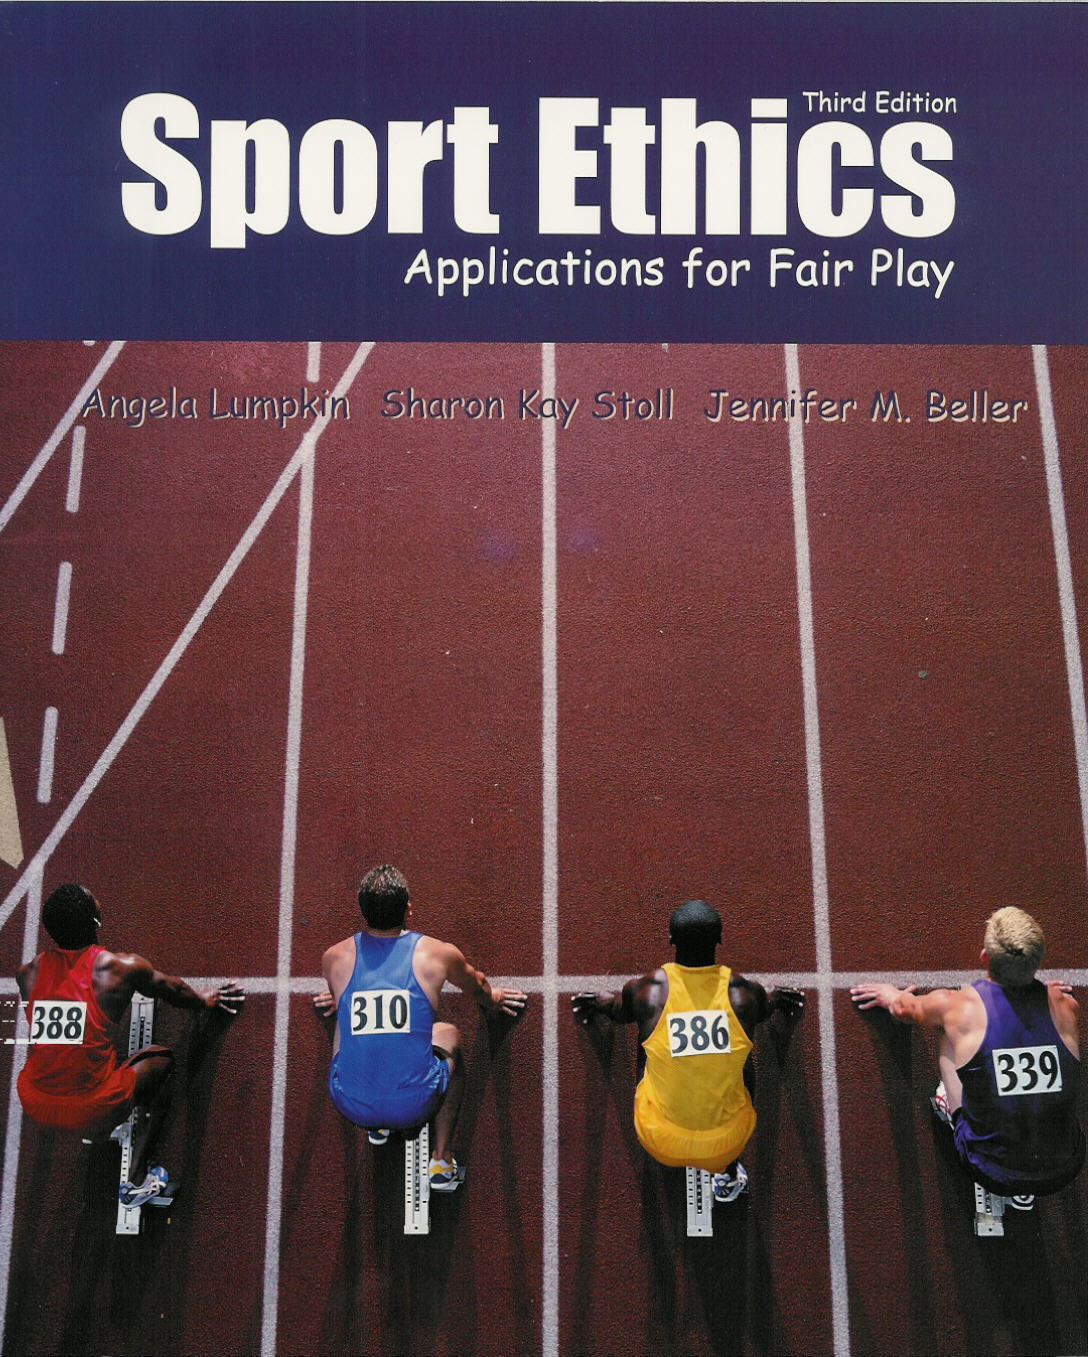 sports ethical issues According to a azcentralcom, the top ethical issues facing the general business community today include: pay equality, deceptive accounting practices, conflicts of.